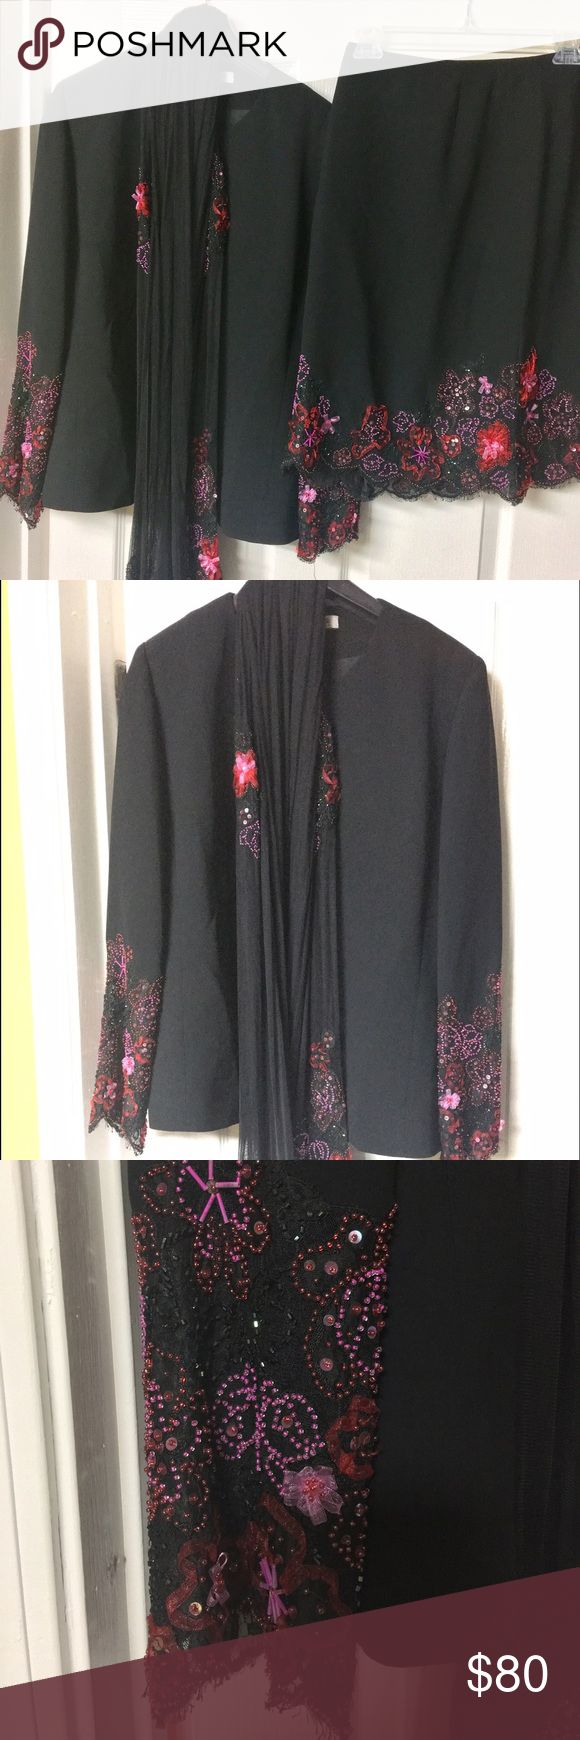 KAY UNGER BLACK 2 PIECE SKIRT SUIT W/LACE SIZE 8 KAY UNGER BLACK 2 PIECE SKIRT SUIT WITH MATCHING SCARF. BEAUTIFUL JACKET WITH EMBELLISHED LACE SLEEVES AND MATCHING SCARF.  THE JACKET'S SIZE TAG HAS BEEN CUT OUT. THE SKIRT ALSO HAS MATCHING EMBELLISHED DESIGN ON BOTTOM. THE SIZE IS 8 FOR BOTH. Kay Unger Other